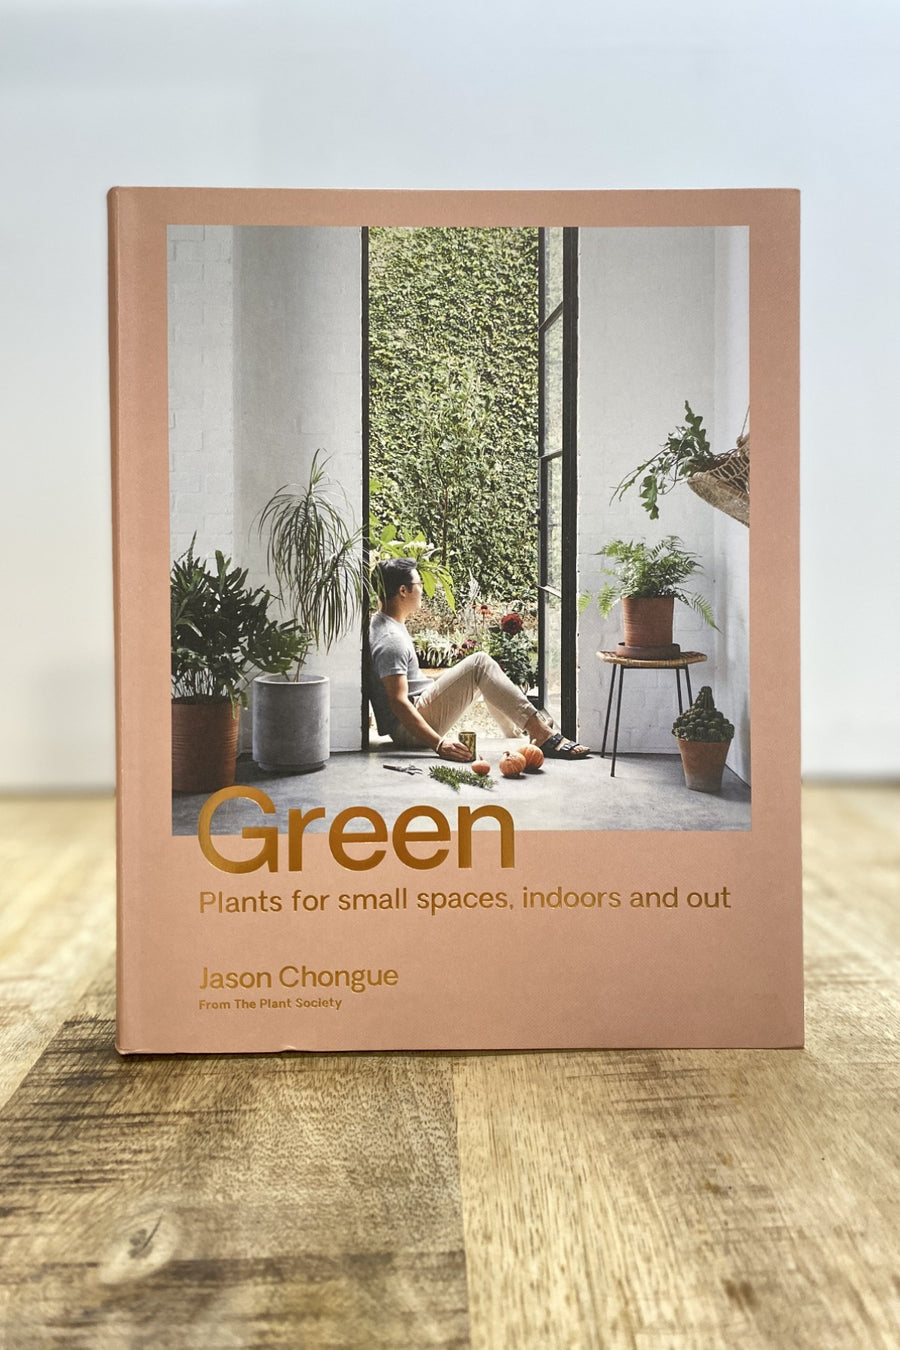 Green - Plants for Small Spaces - Shop Online At Mookah - mookah.com.au